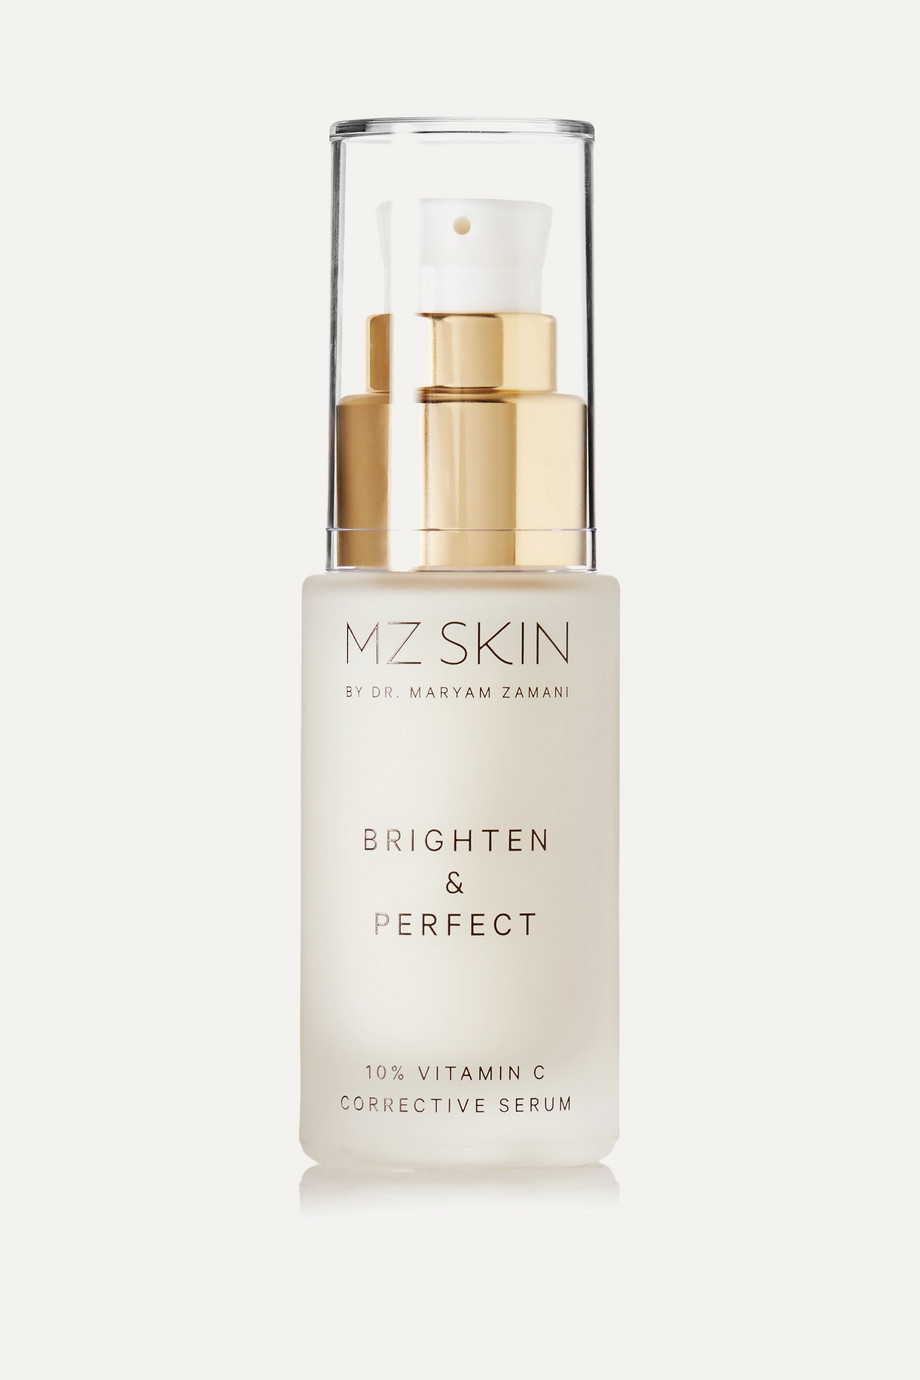 MZ SKIN Brighten & Perfect 10% Vitamin C Corrective Serum, 30ml